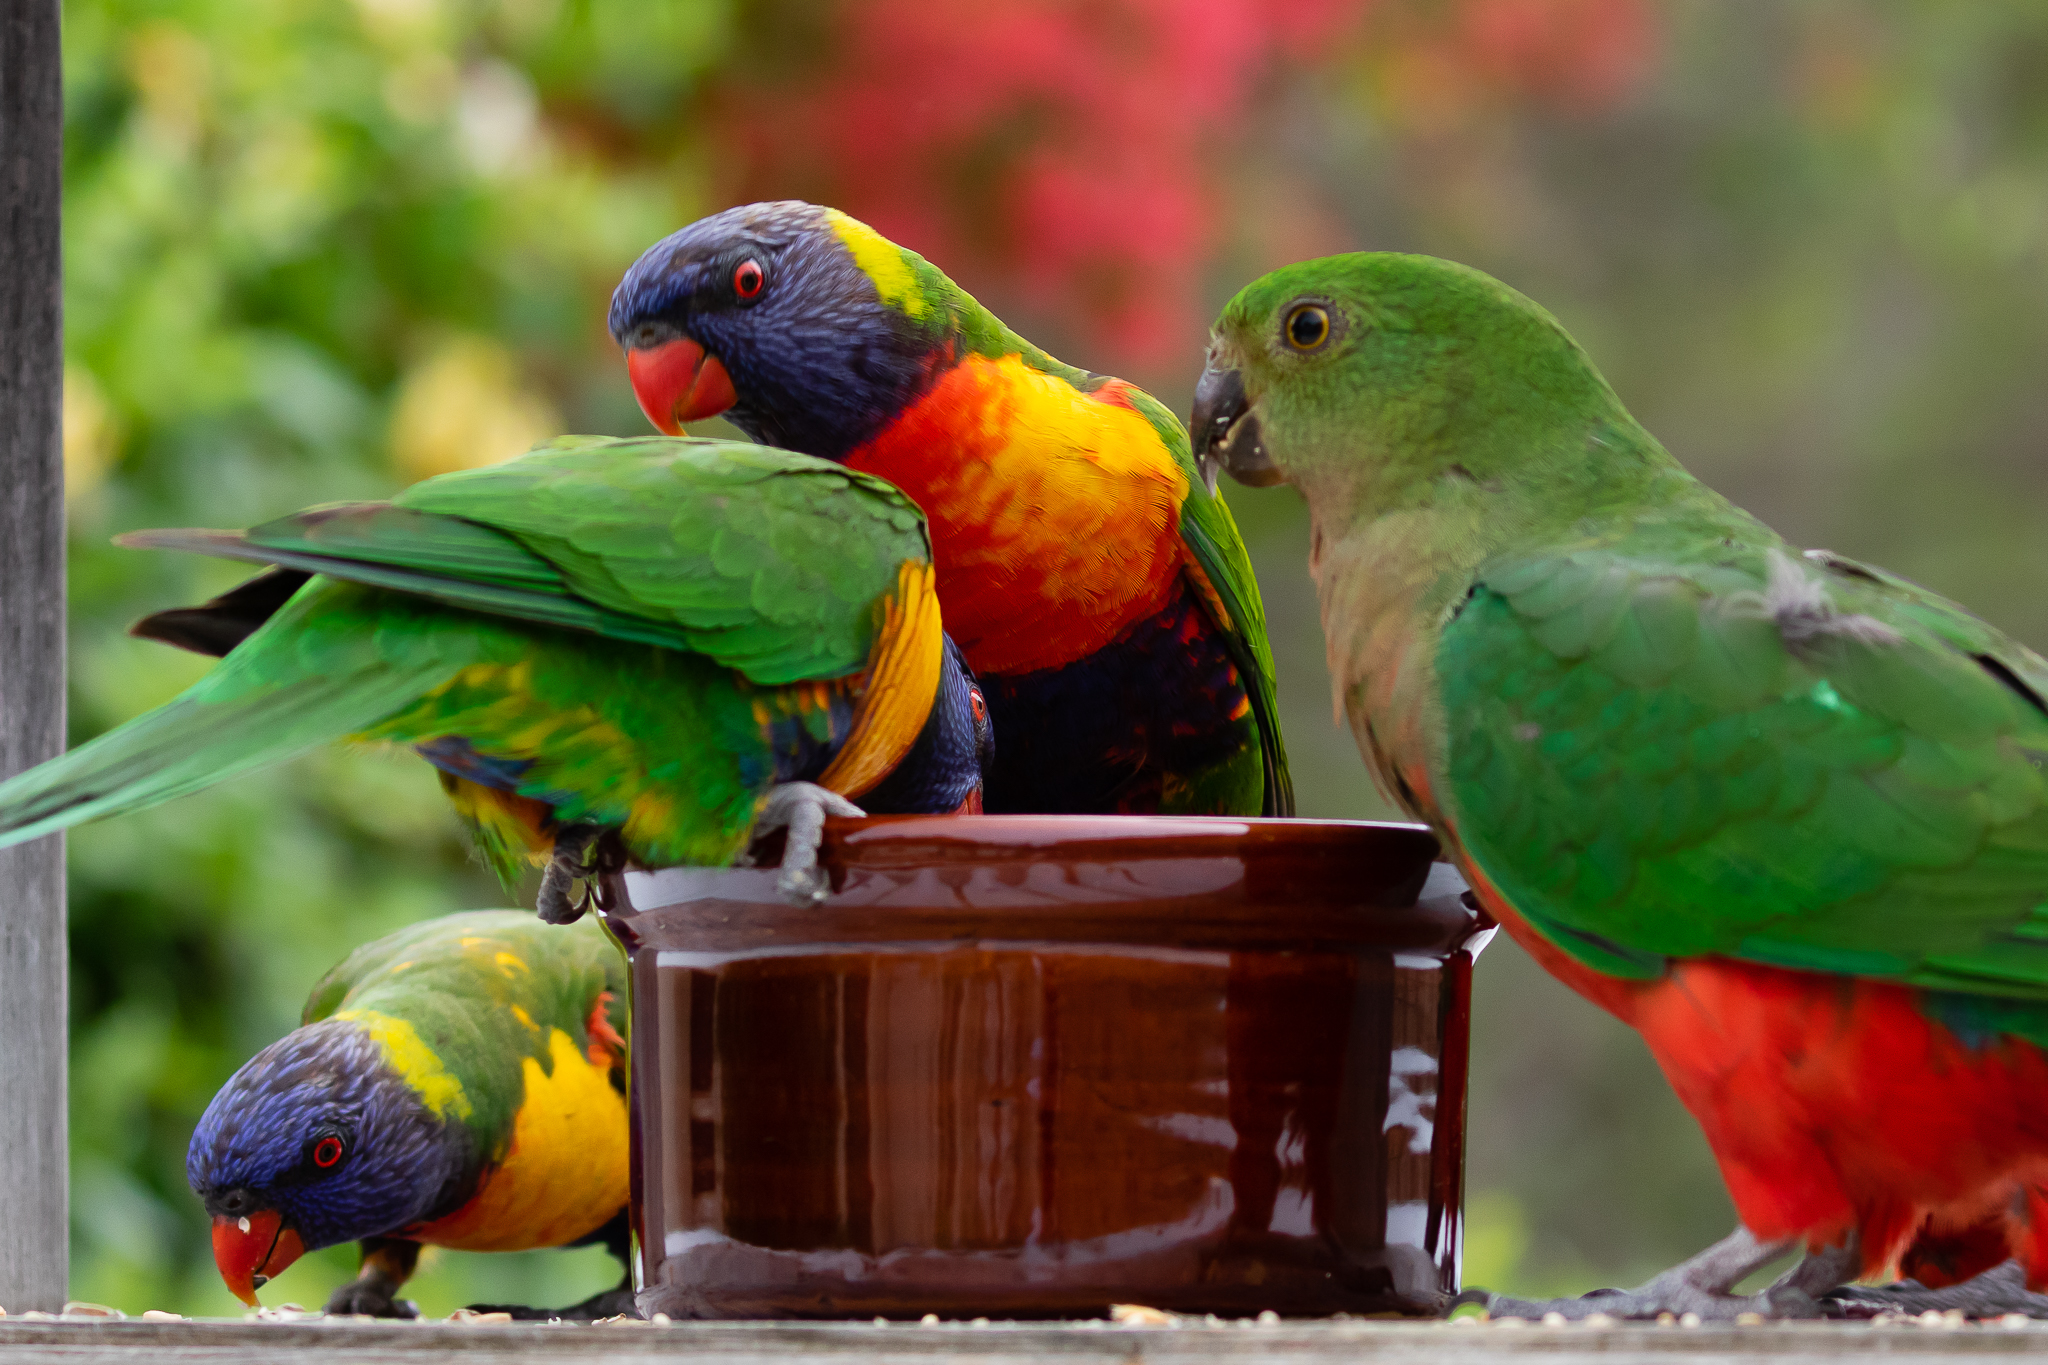 The Rainbow Lorikeet (31cm) is another of Australia's most common birds found along the east coast, the south-east and Perth. They are aggressive out competing others for nest sites and food. The King Parrot on the right waits her turn for food!